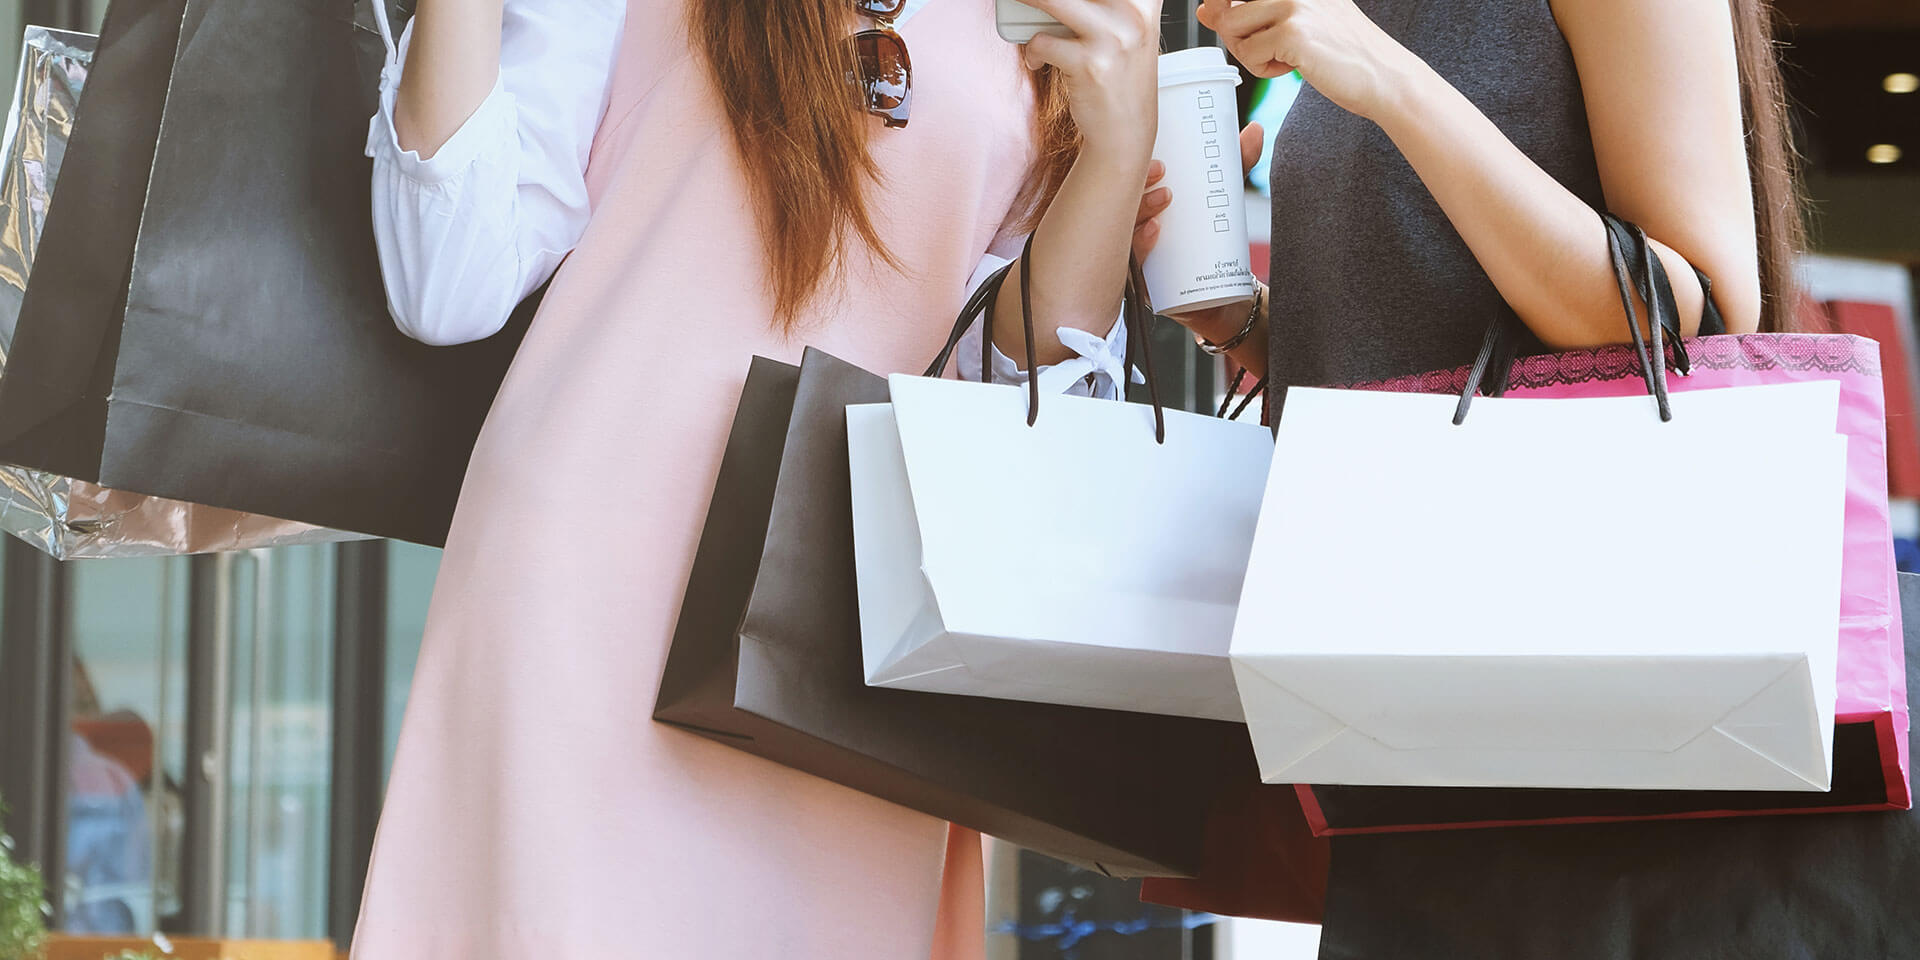 To succeed in retail, put the customer in the driving seat